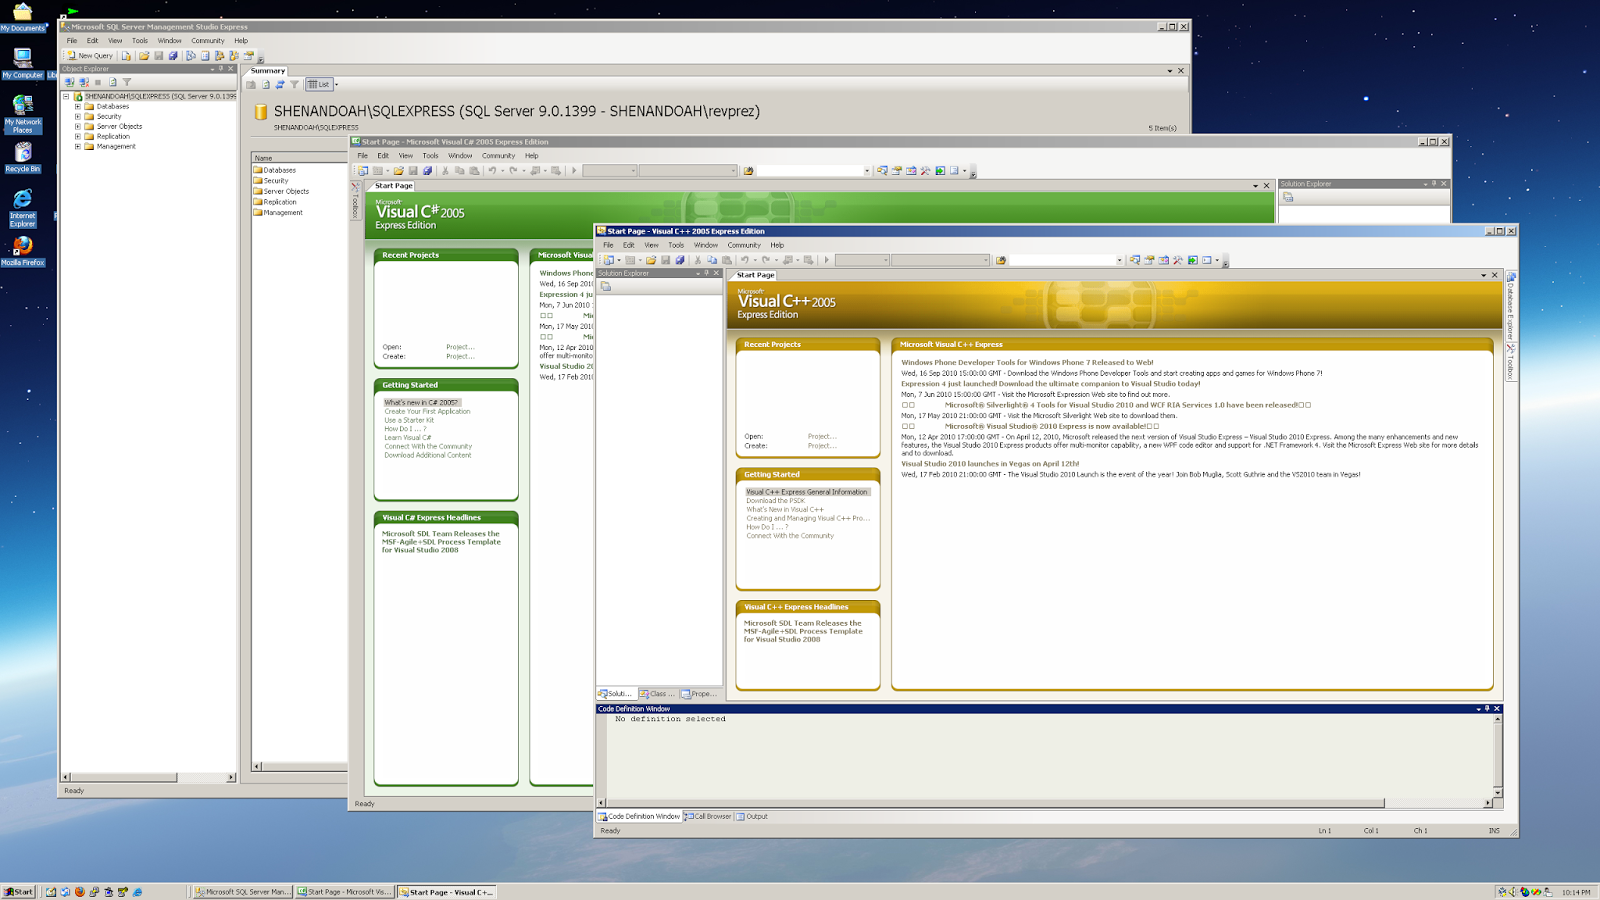 Open Correlate: Reviving Windows 2000, IE 6 SP1 and Visual